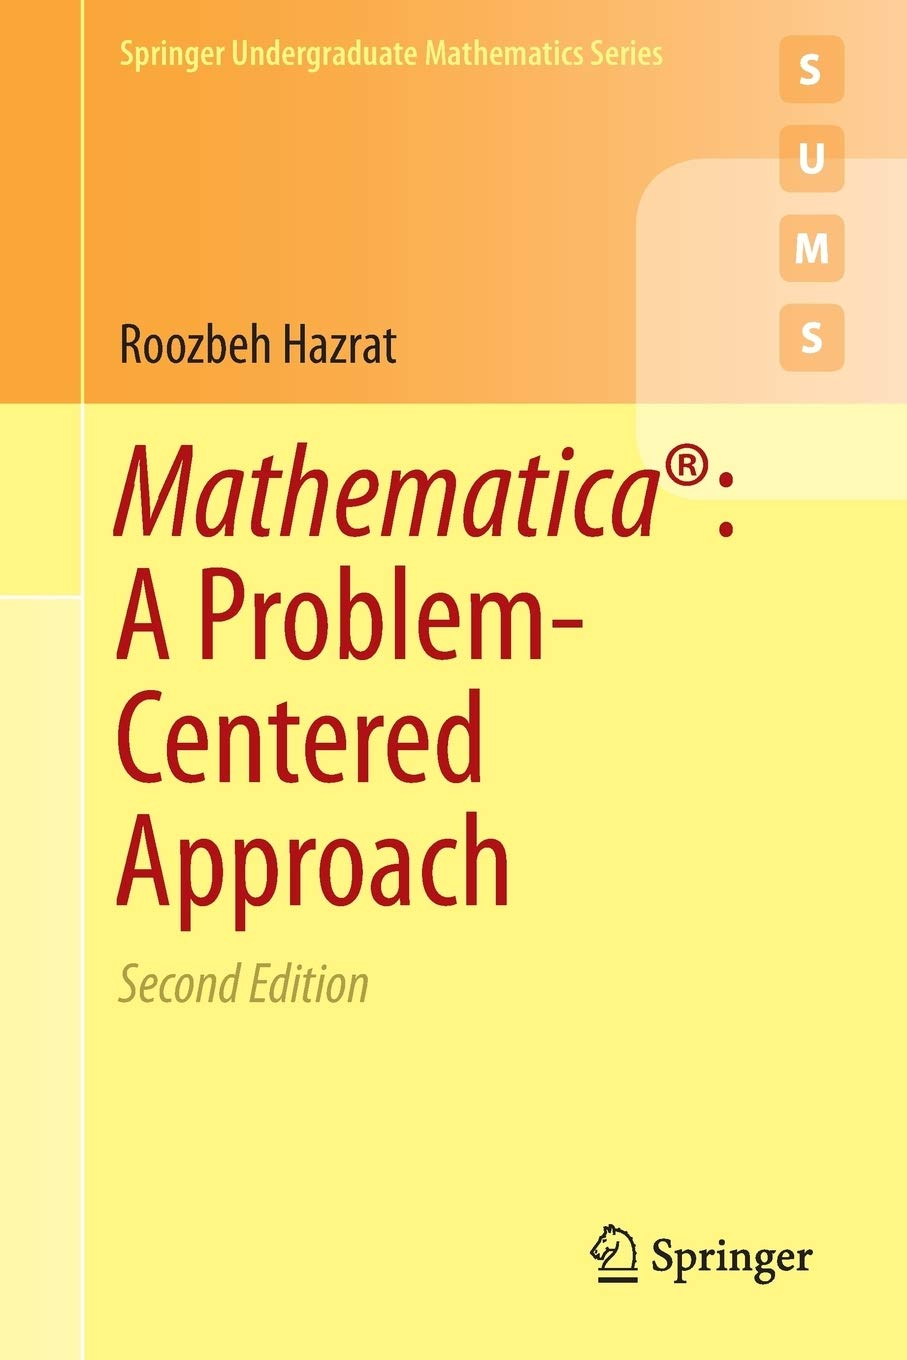 Image OfMathematica®: A Problem-Centered Approach